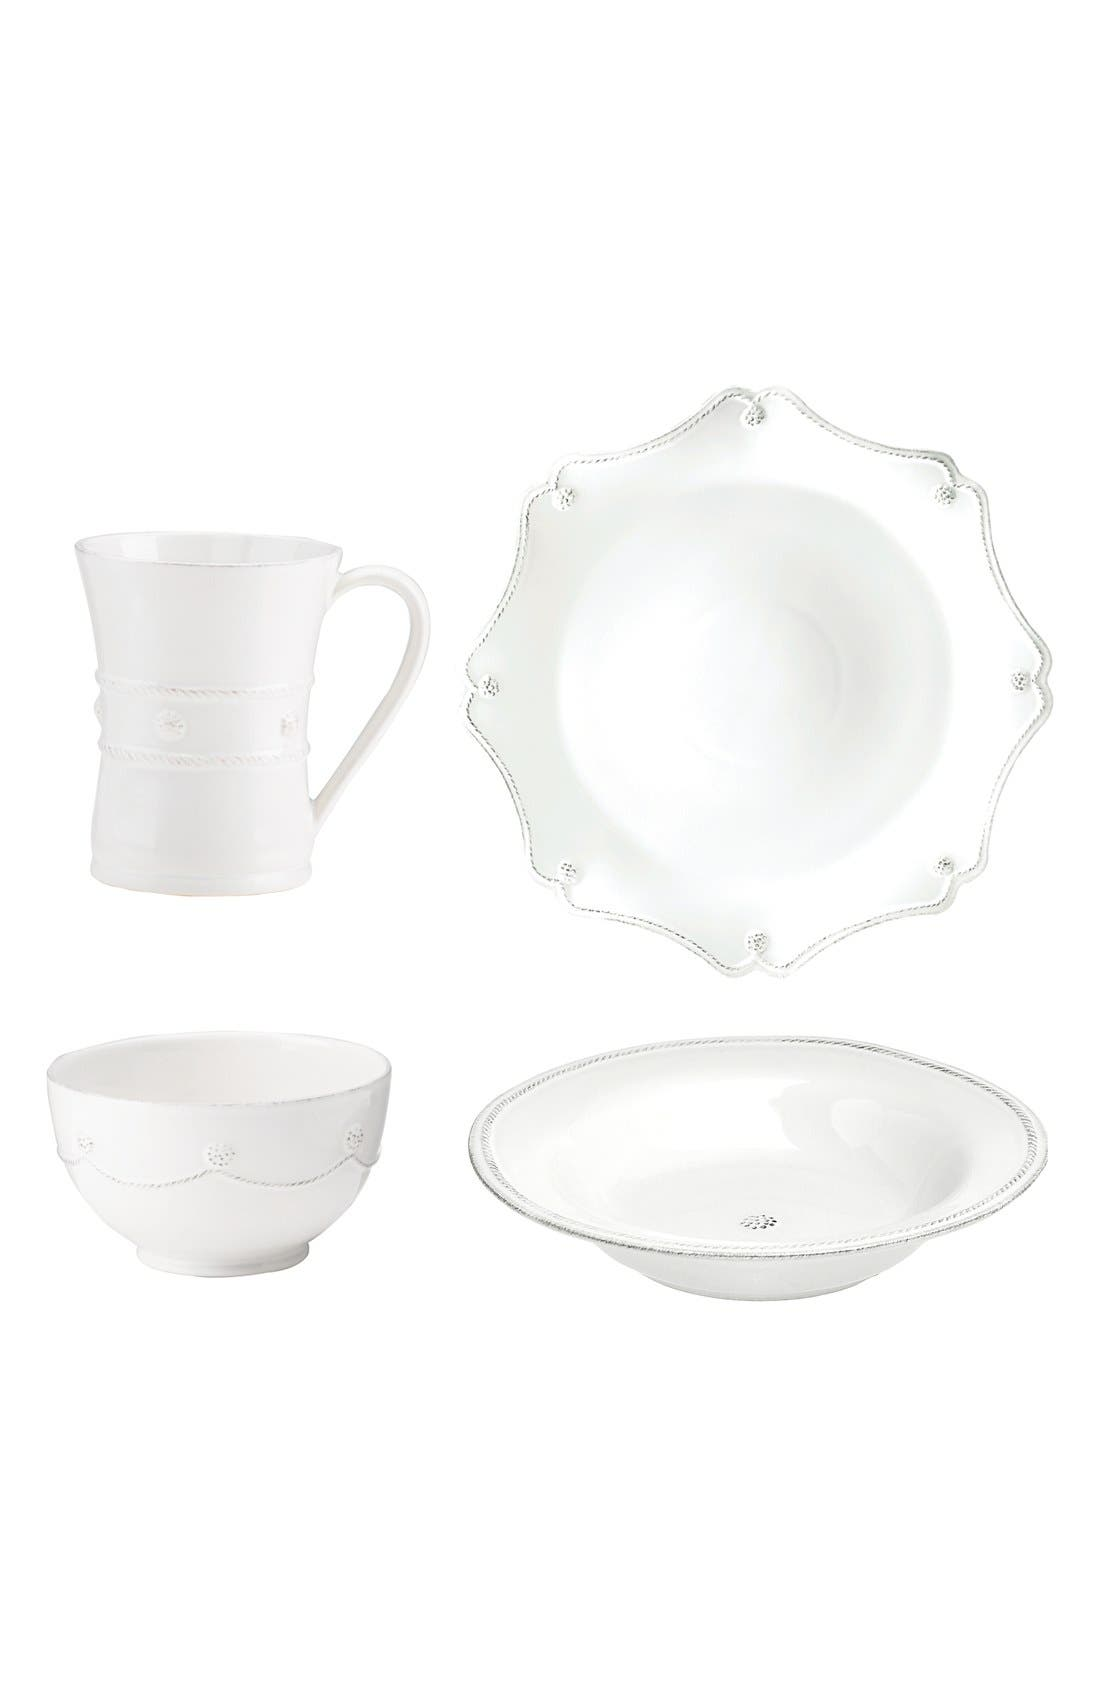 'Berry and Thread' 4-Piece Dinnerware Add-On Set,                         Main,                         color, 100